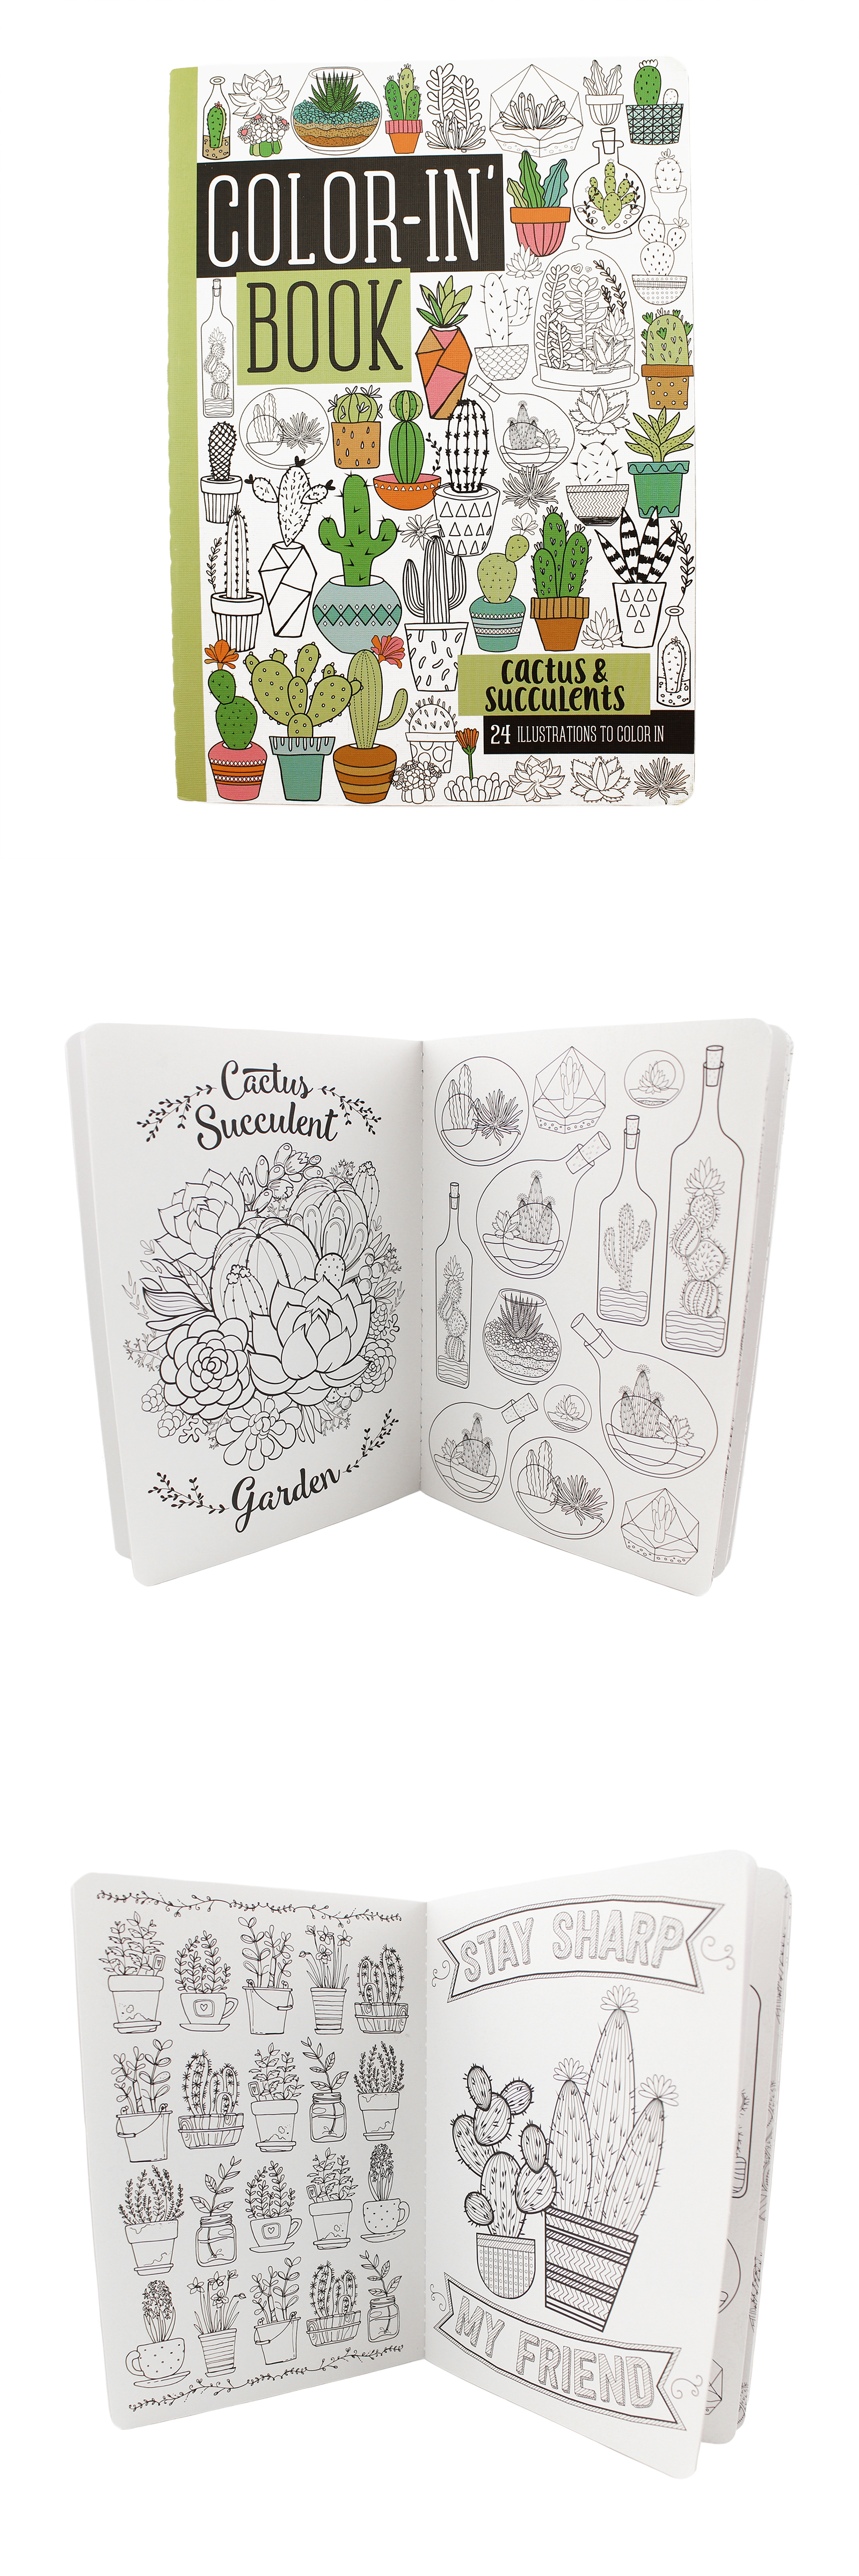 Check Out Our Brand New Travel Size Coloring Book For Adults 24 Pages Of Whimsical Cactus And Succulen Coloring Books Love Coloring Pages Travel Size Products